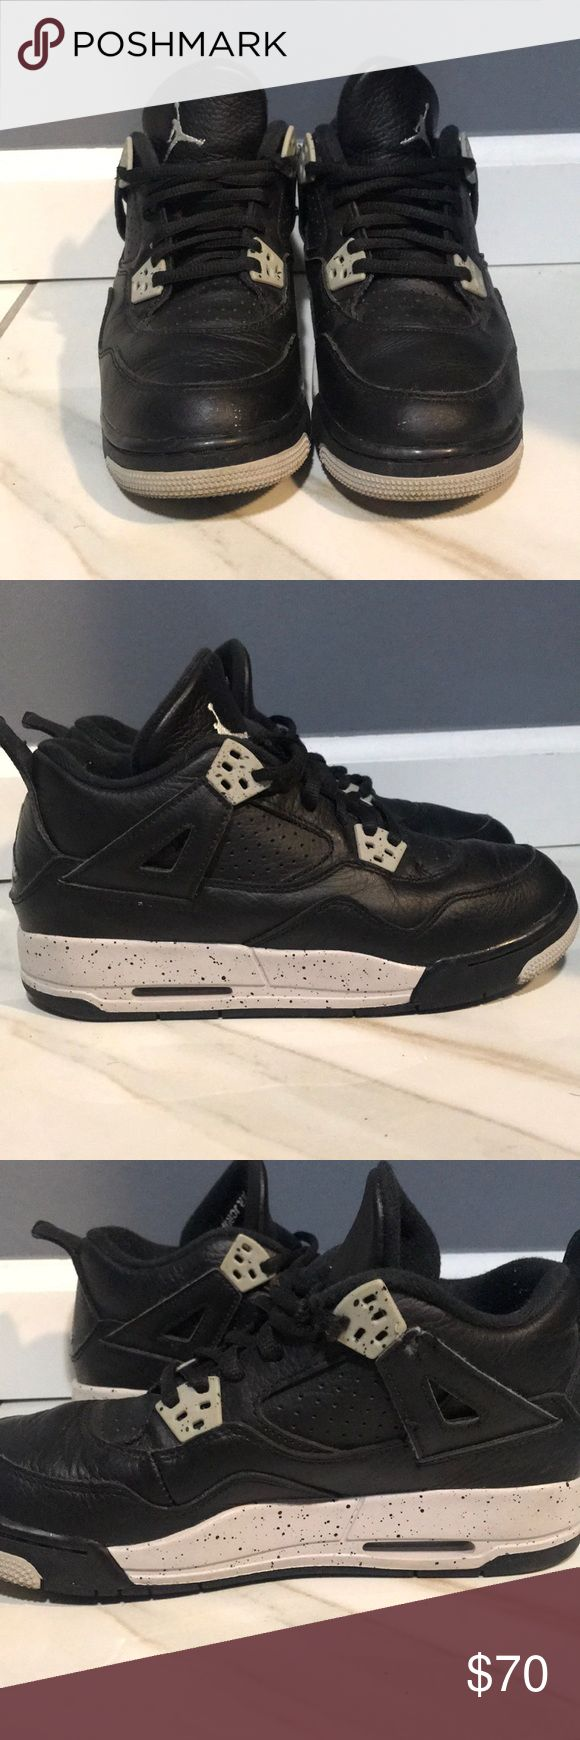 Air Jordan Retro 4 Air Jordan retro 4 (oreo) . Size 5 Y. Slightly used . Unfortunately my puppy got ahold of them and slightly nibbled on the left sneaker (see picture 3) Jordan Shoes Sneakers